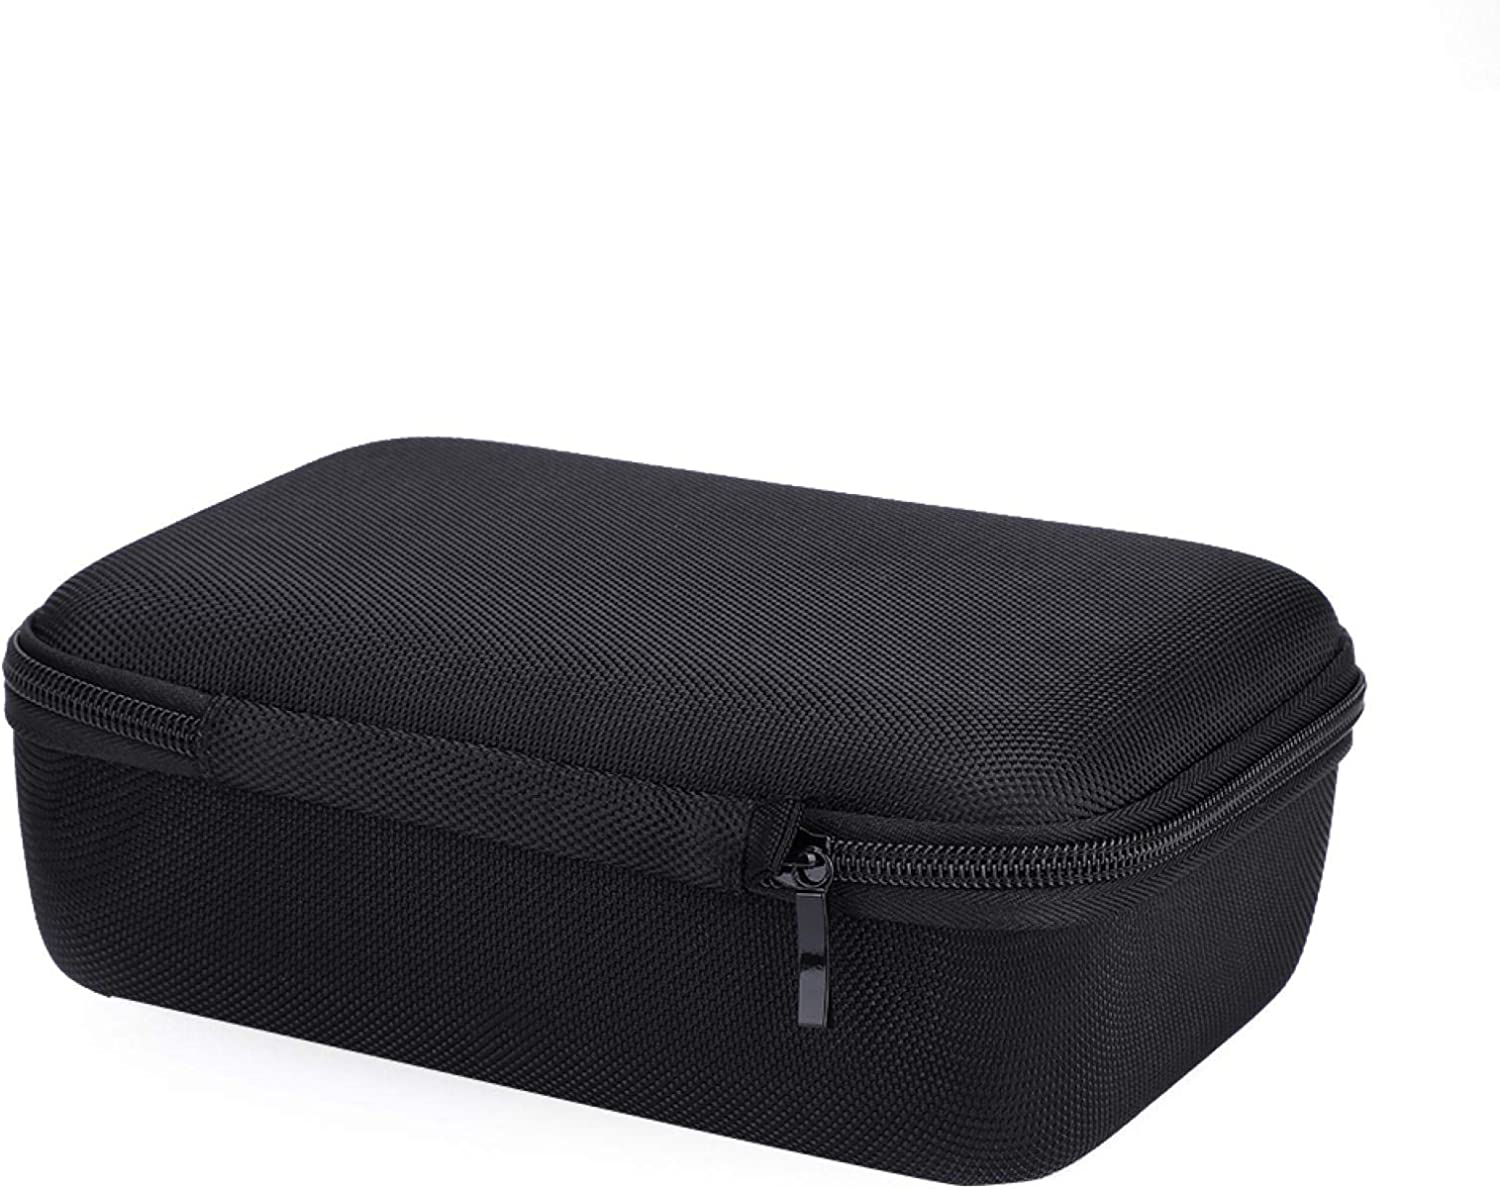 Teror Microphone Bag Protecting Free shipping on posting reviews Storage Case Rode Box Limited time trial price for VideoM